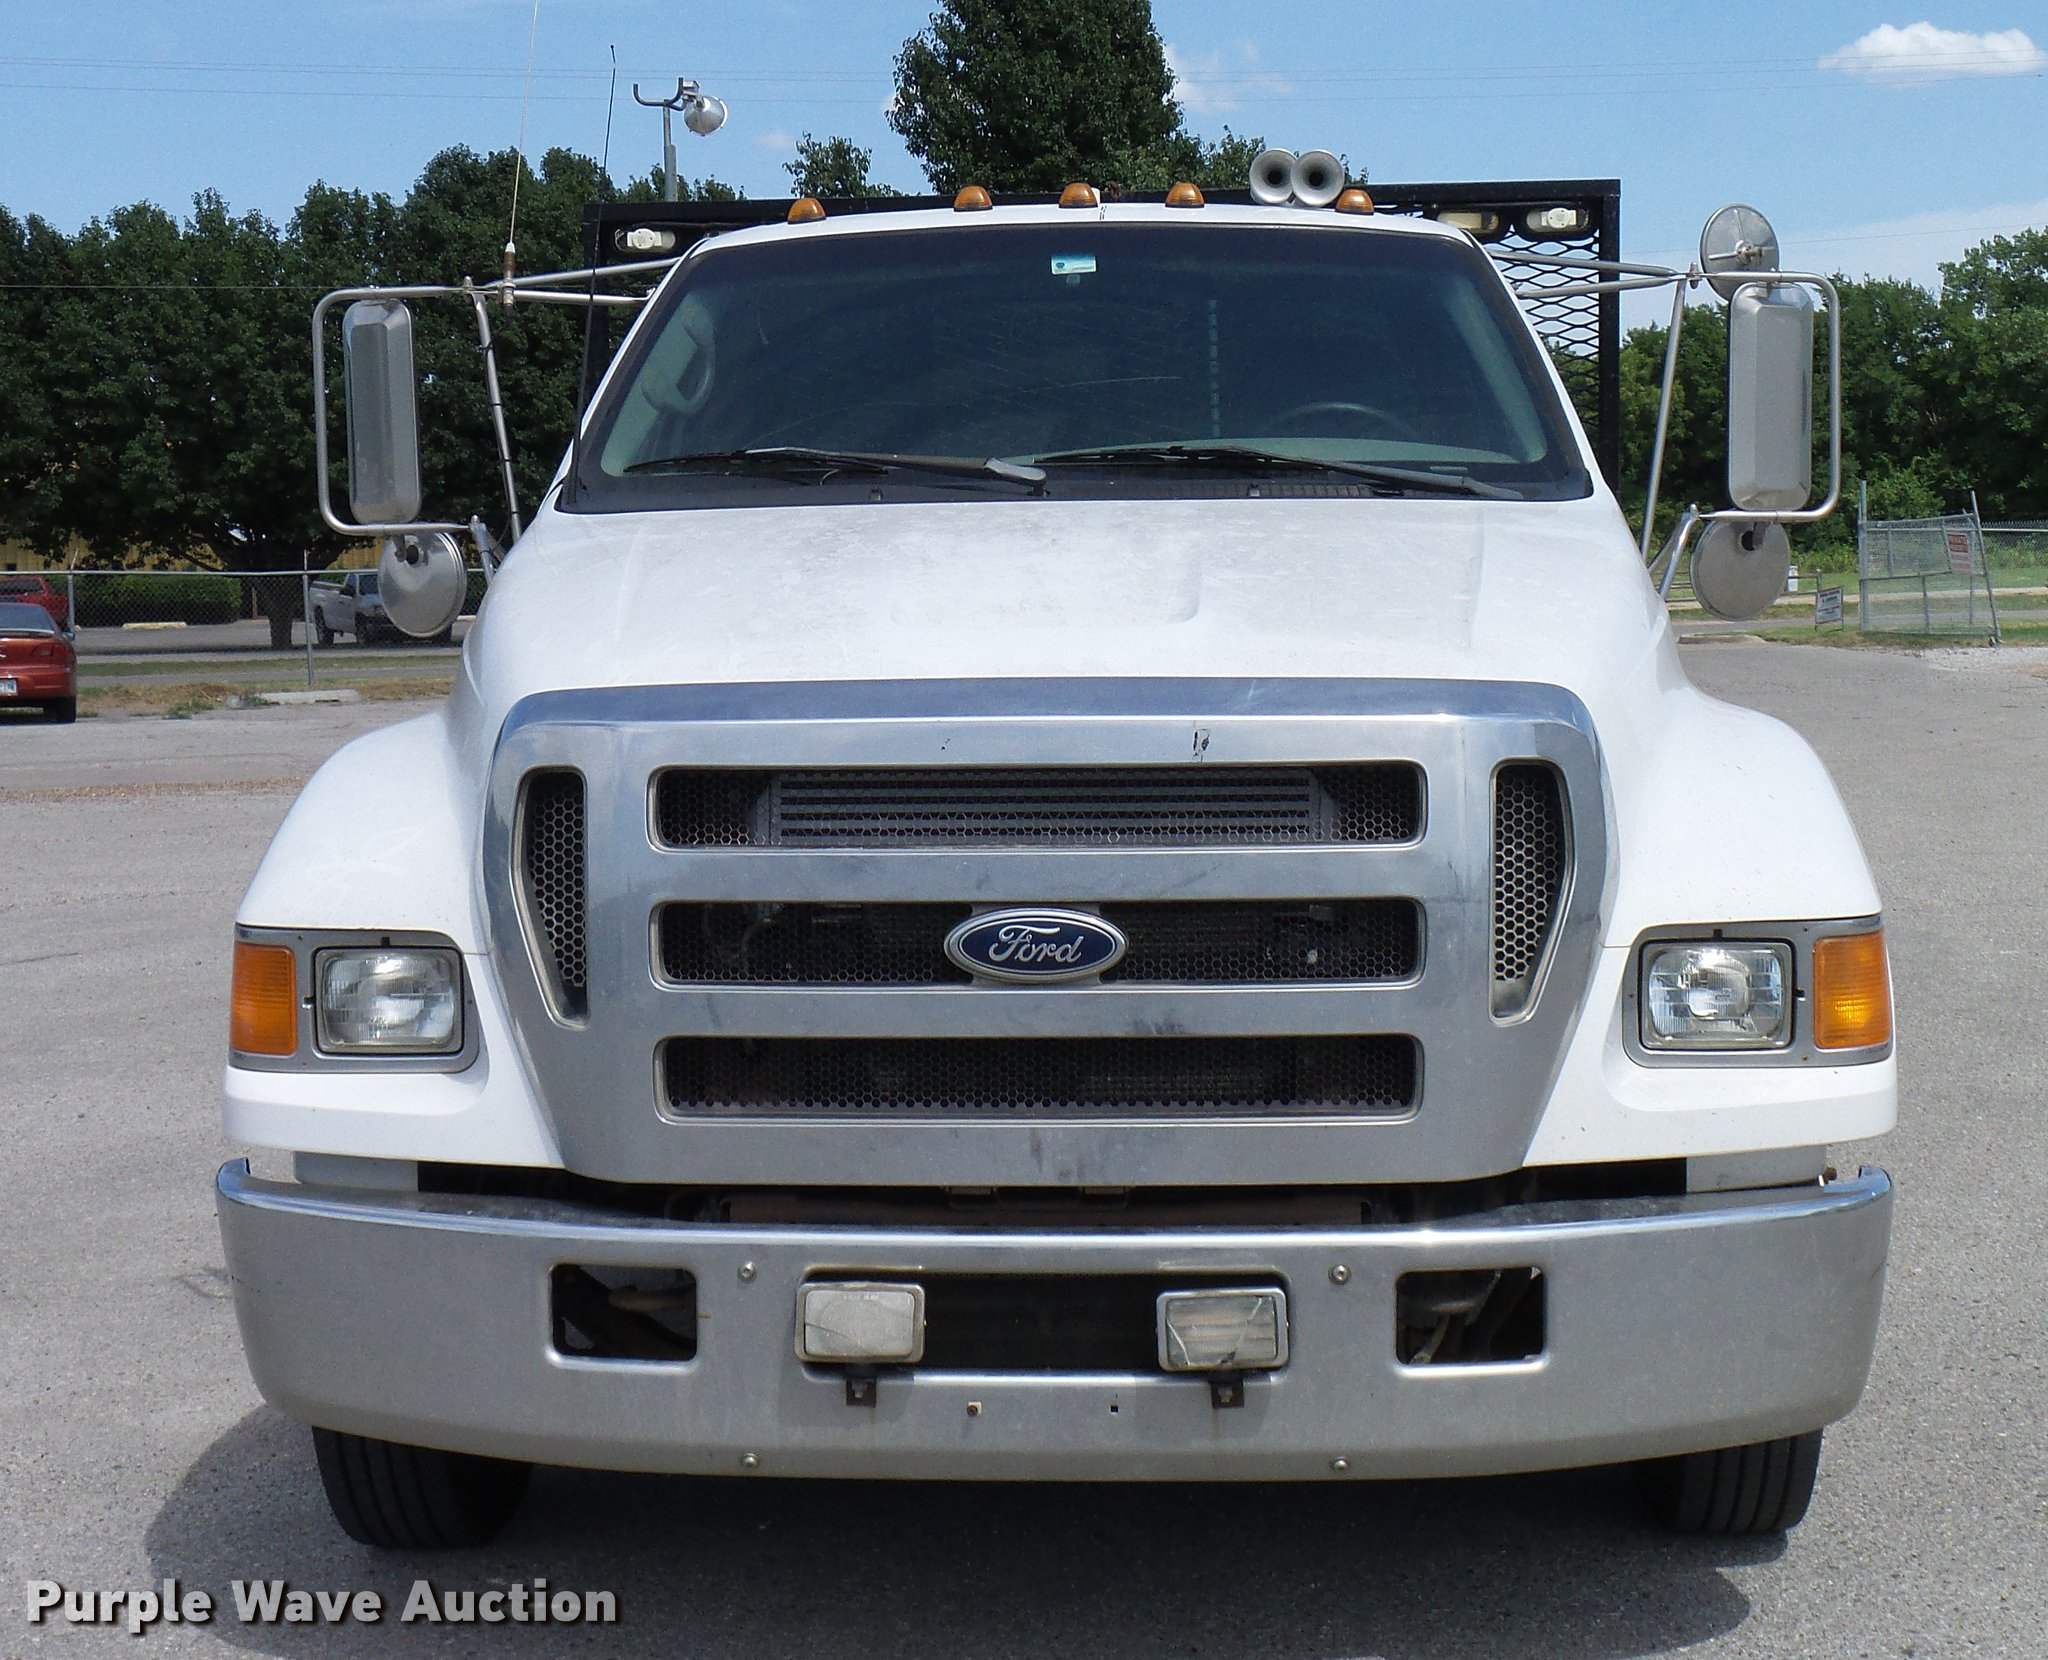 ... Ford F650 Super Duty XLT flatbed truck Full size in new window ...